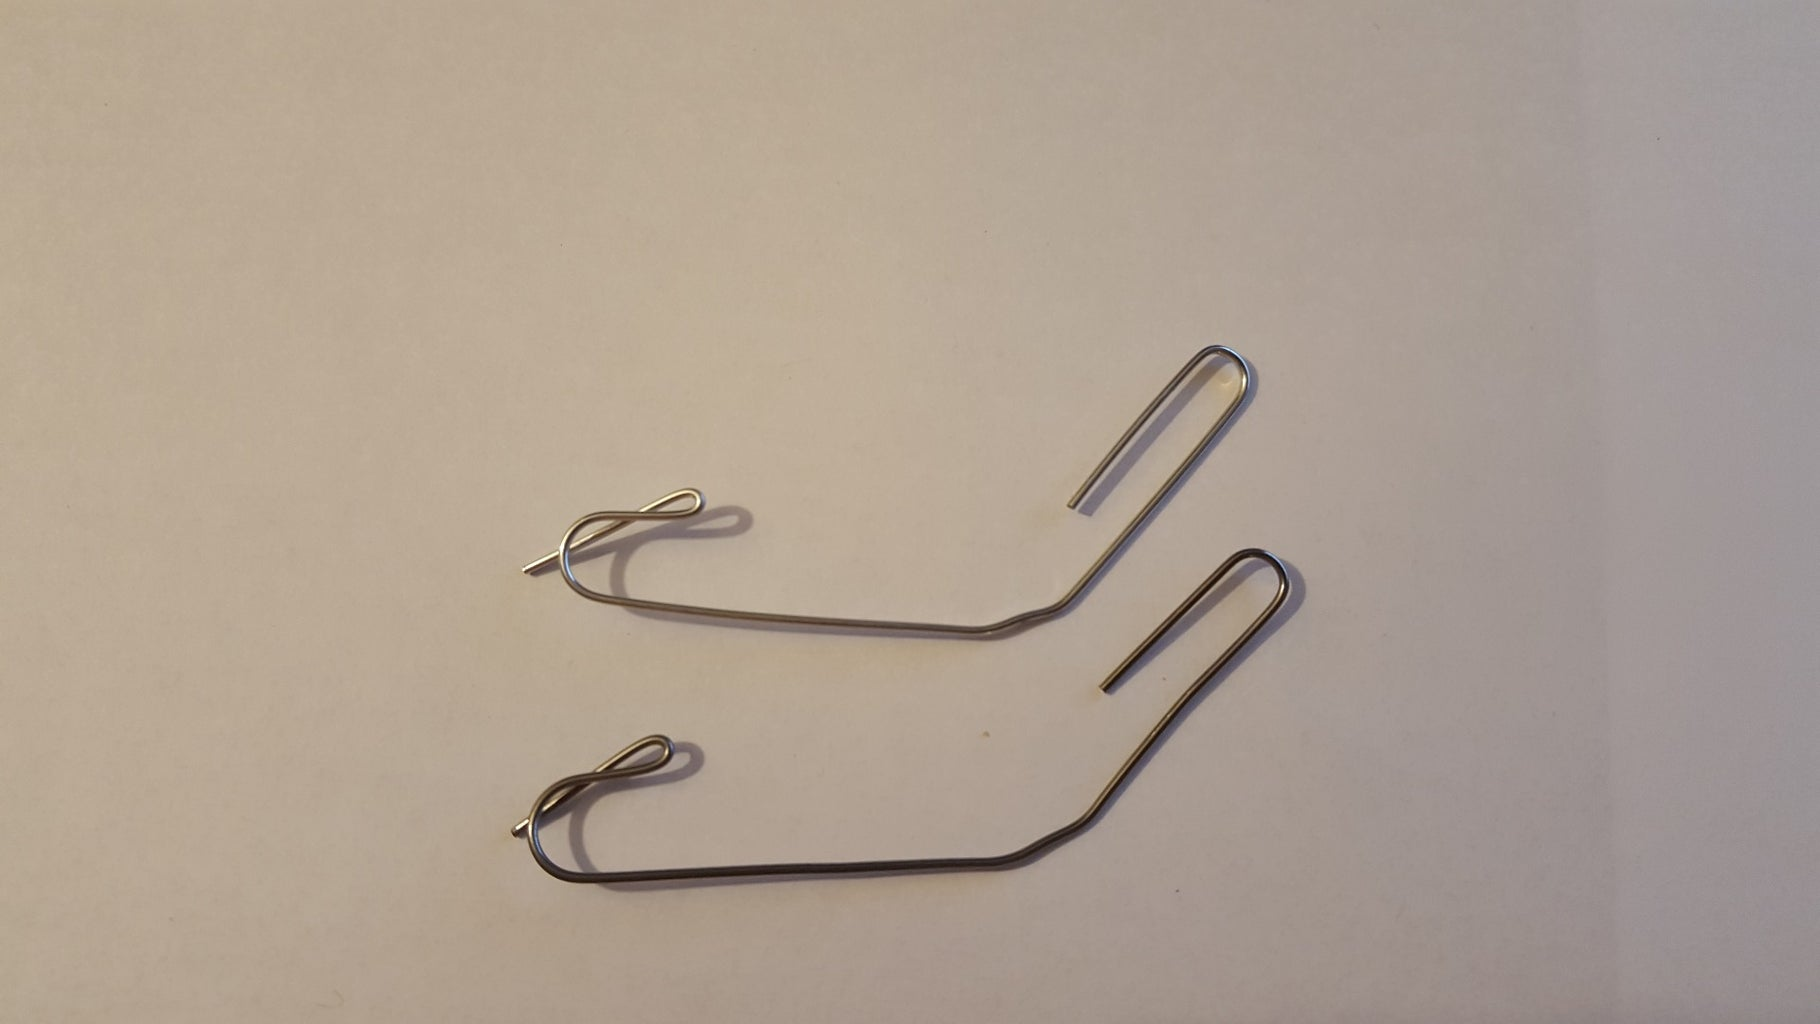 Bend the Paperclips